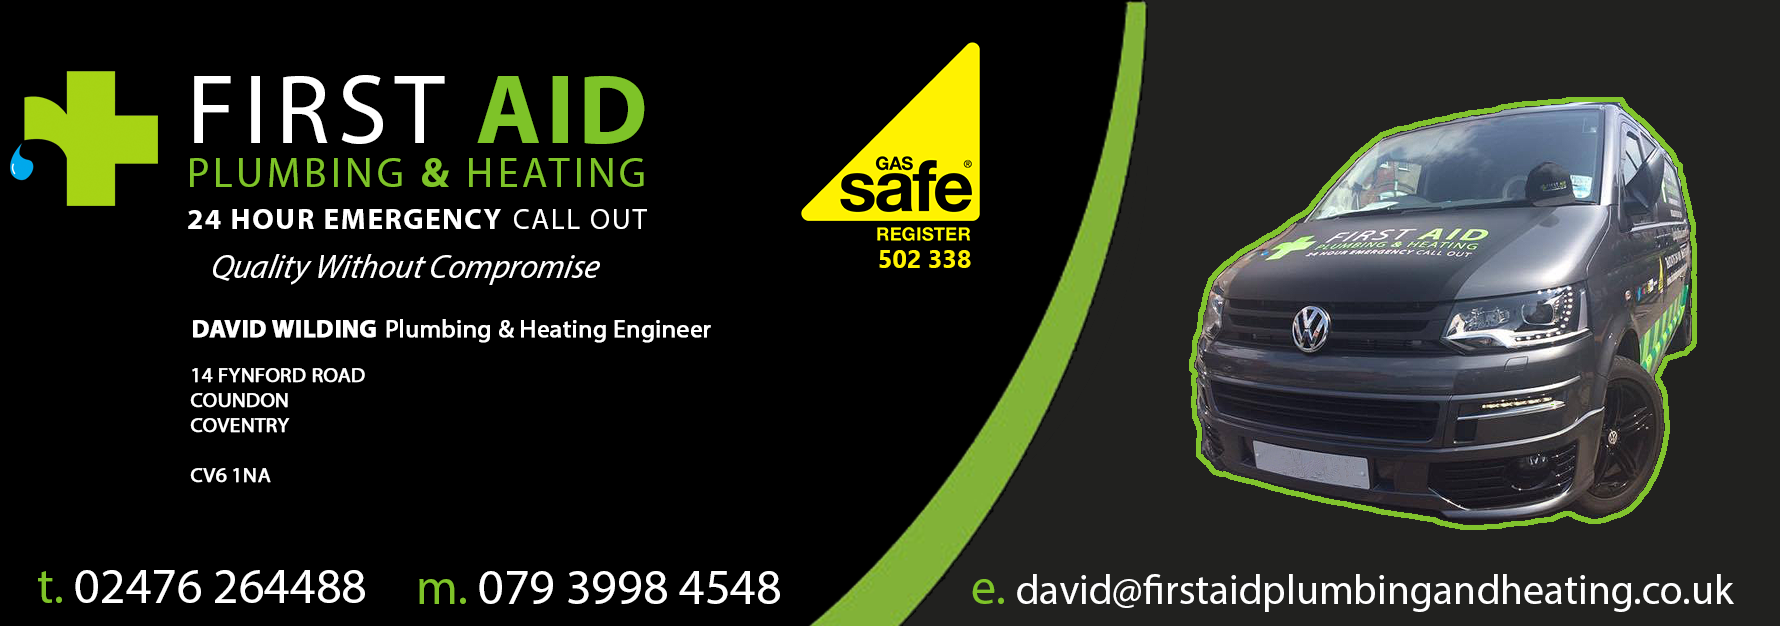 Firstaid Plumbing & Heating Engineers covering Coventry, Warwickshire and West Midlands